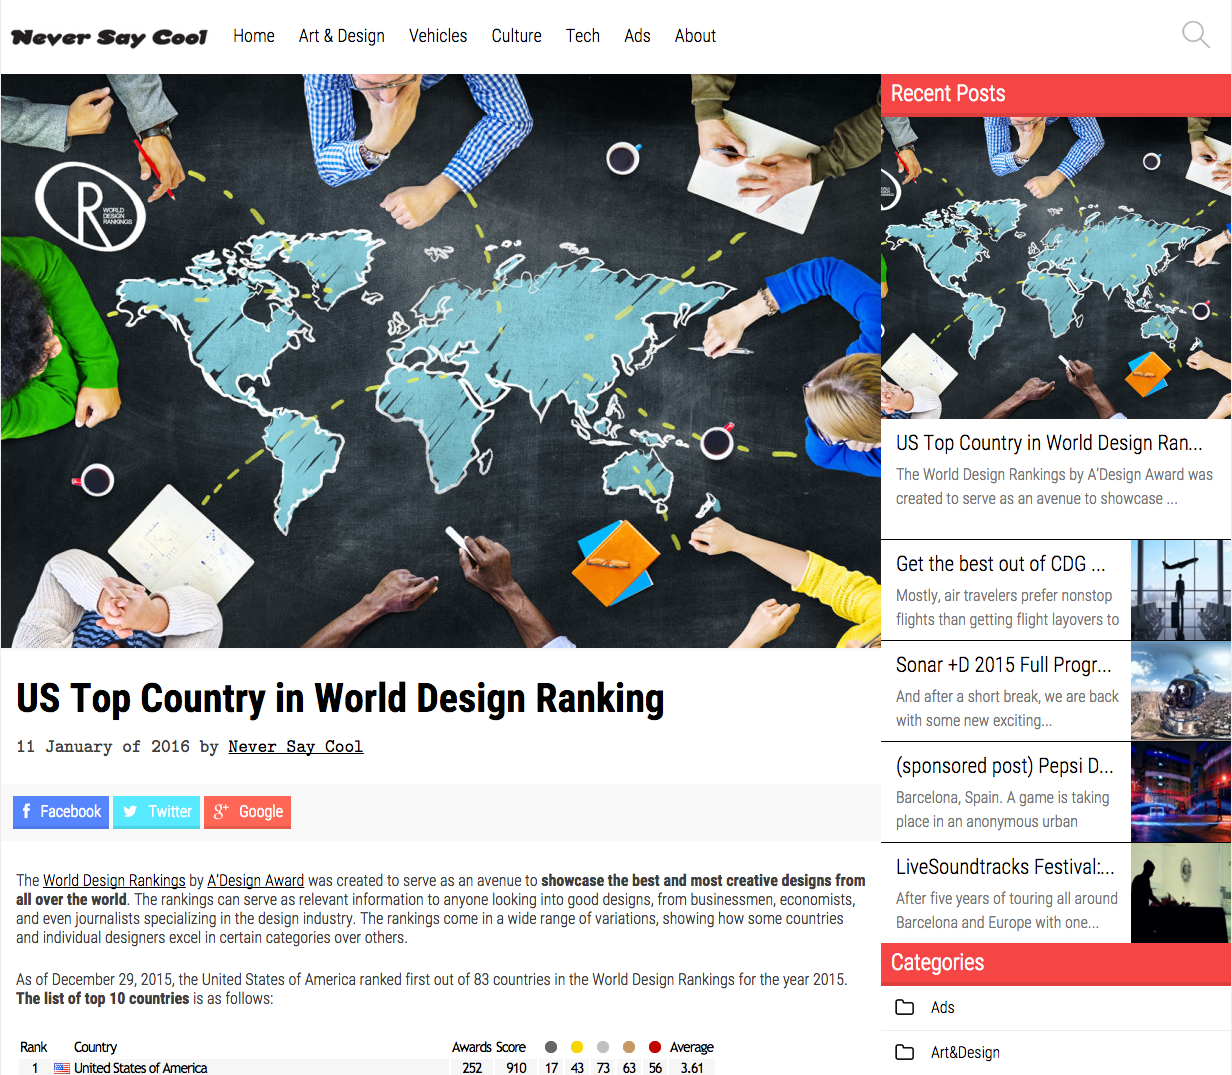 World Design Rankings - Featuring Leon Mege